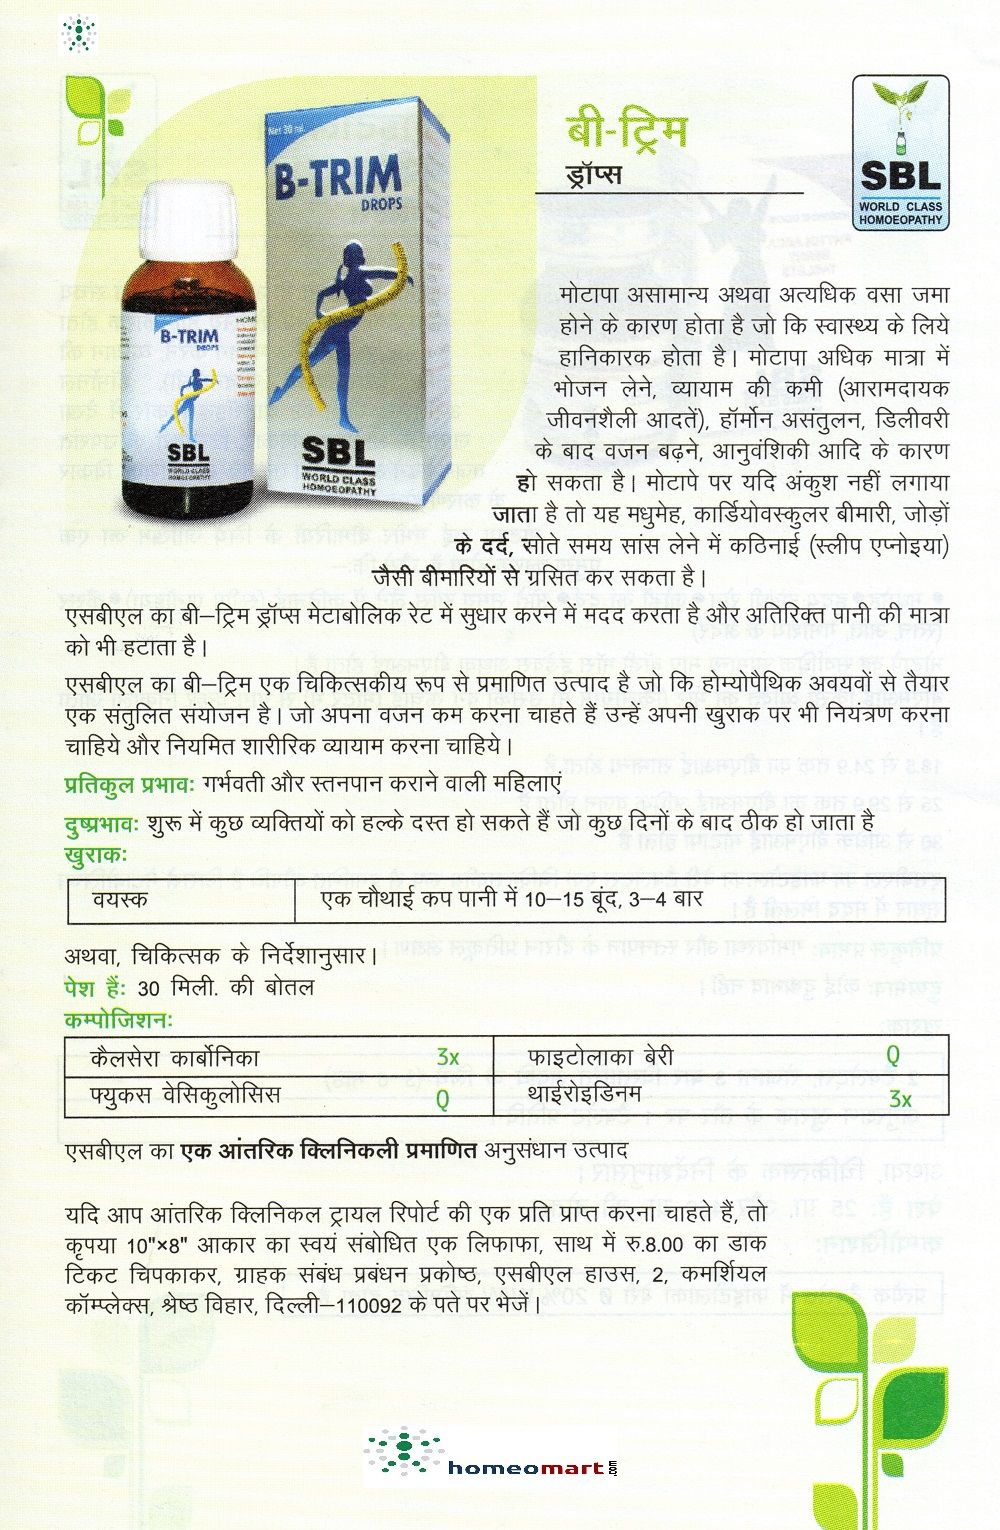 SBL B trim (btrim) Drops for Management of Obesity, Weight loss